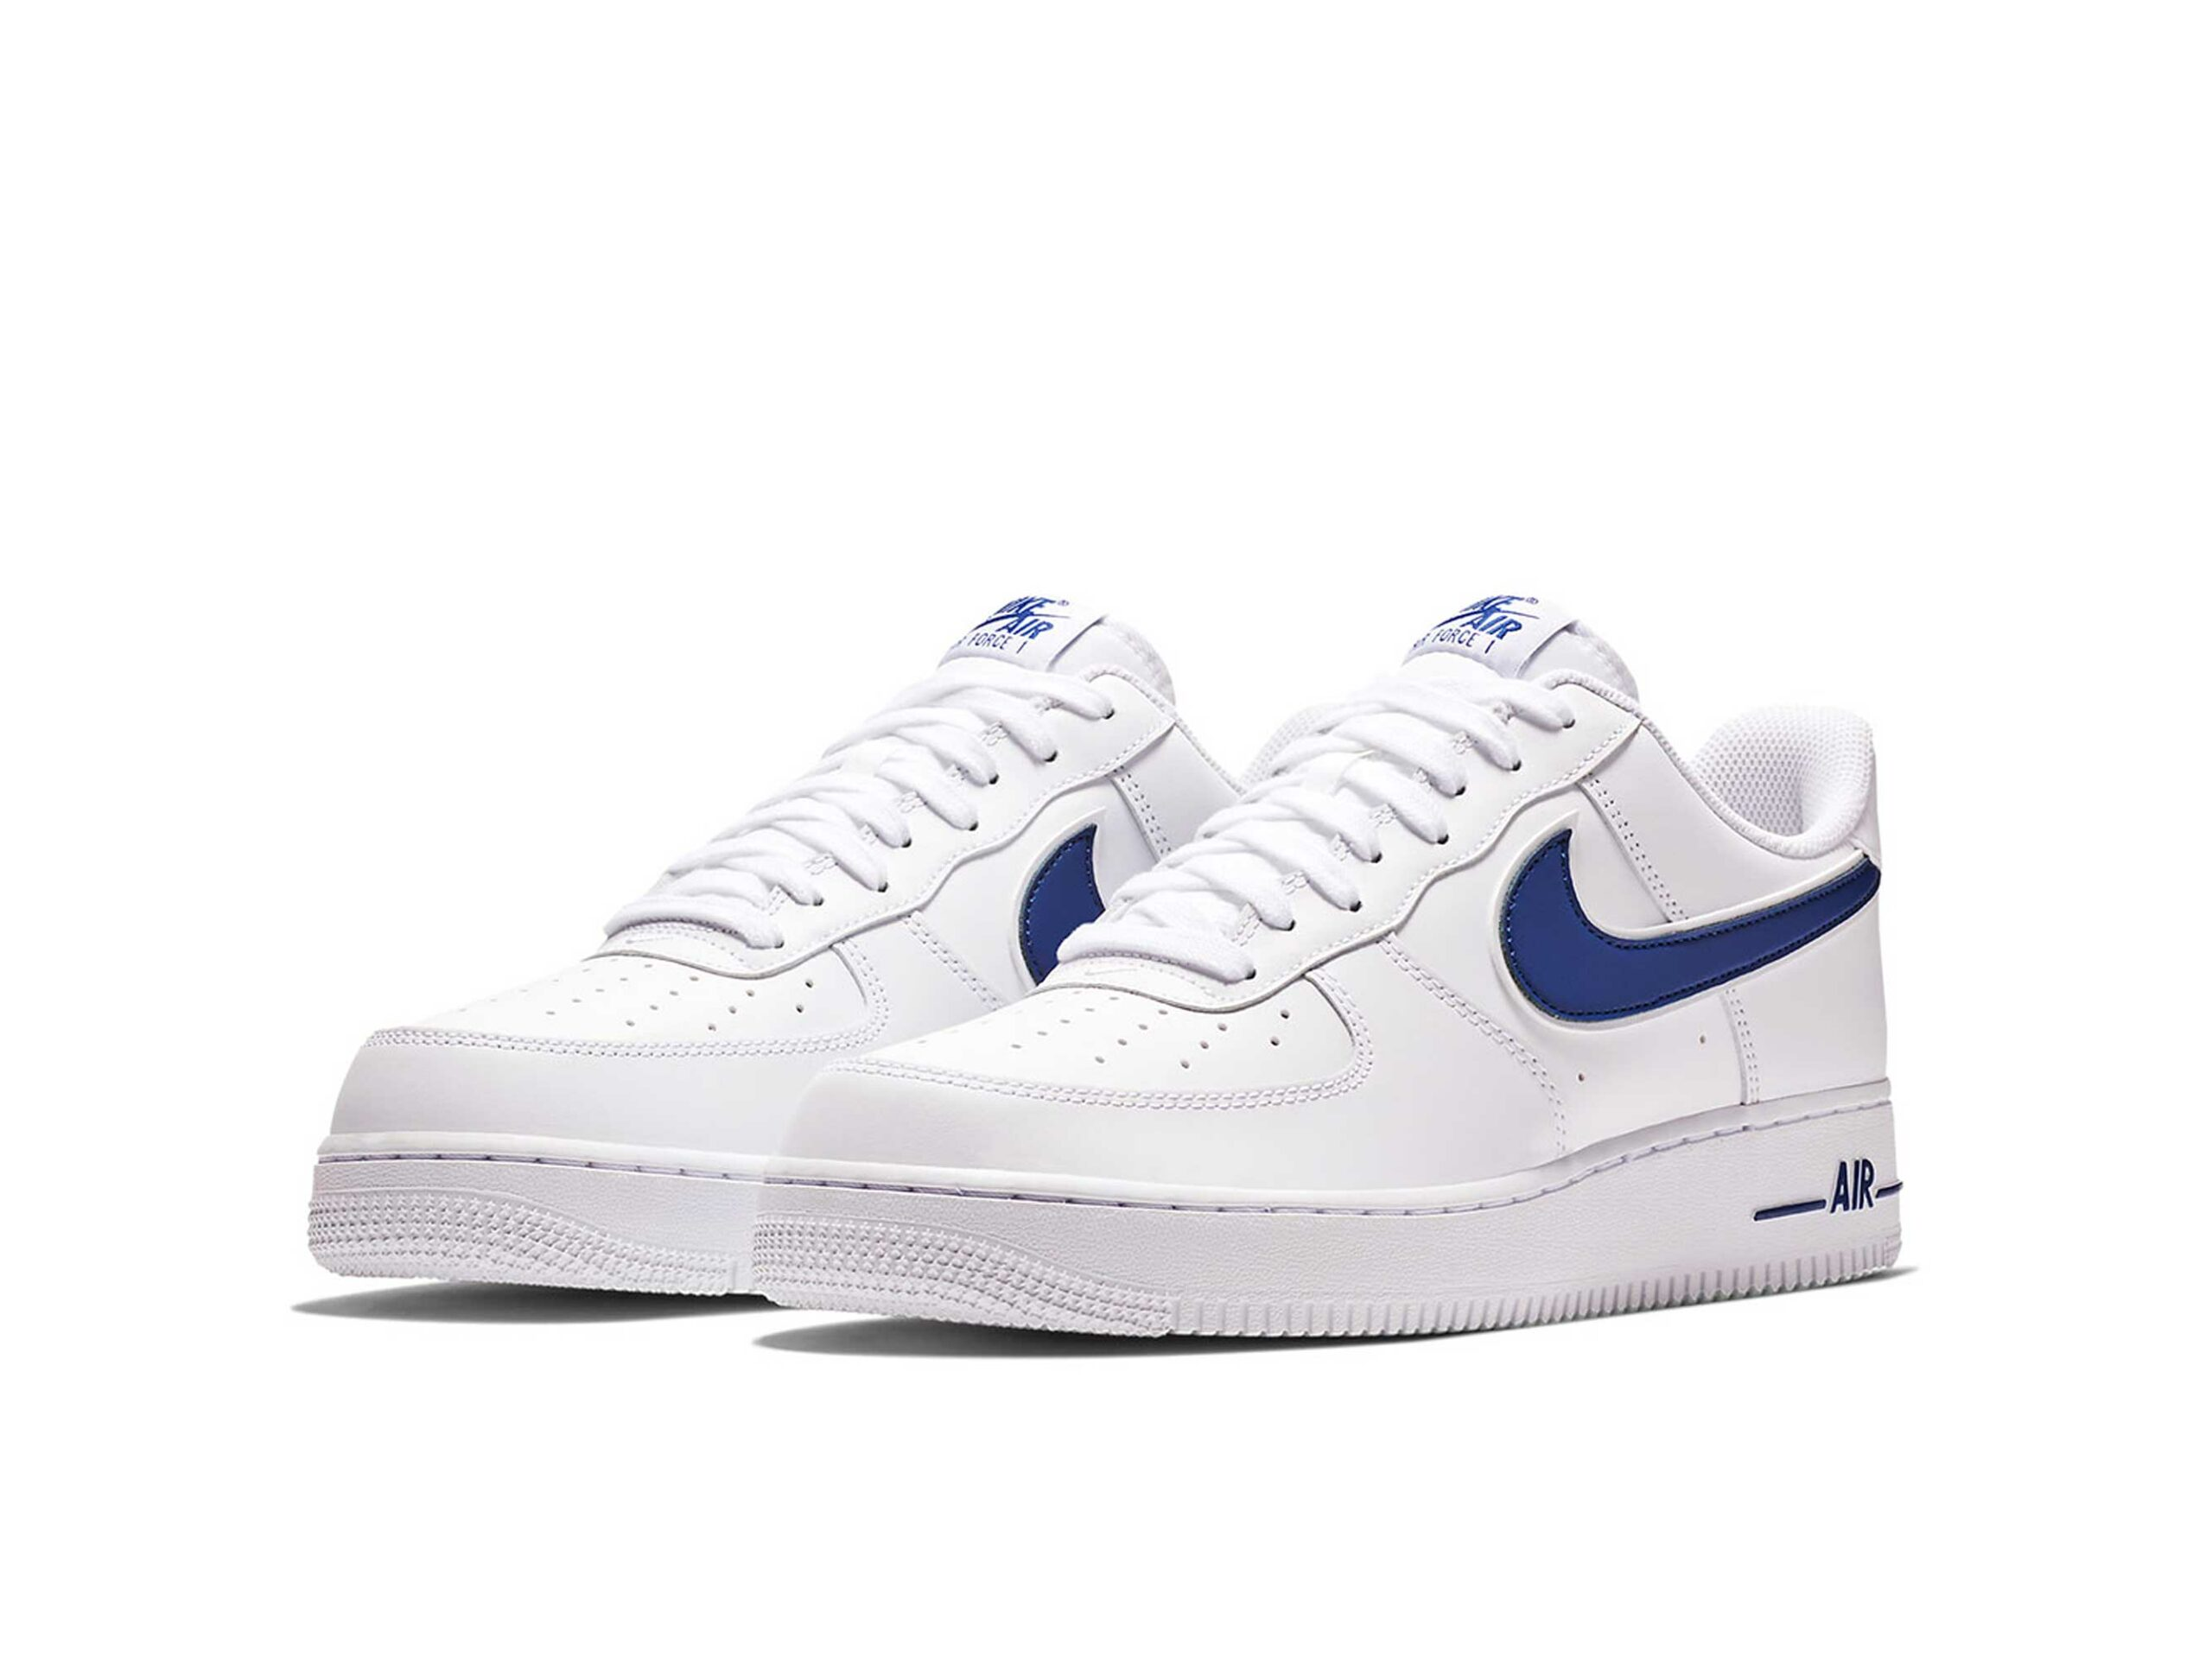 nike air force 1 white blue AO2423_103 купить